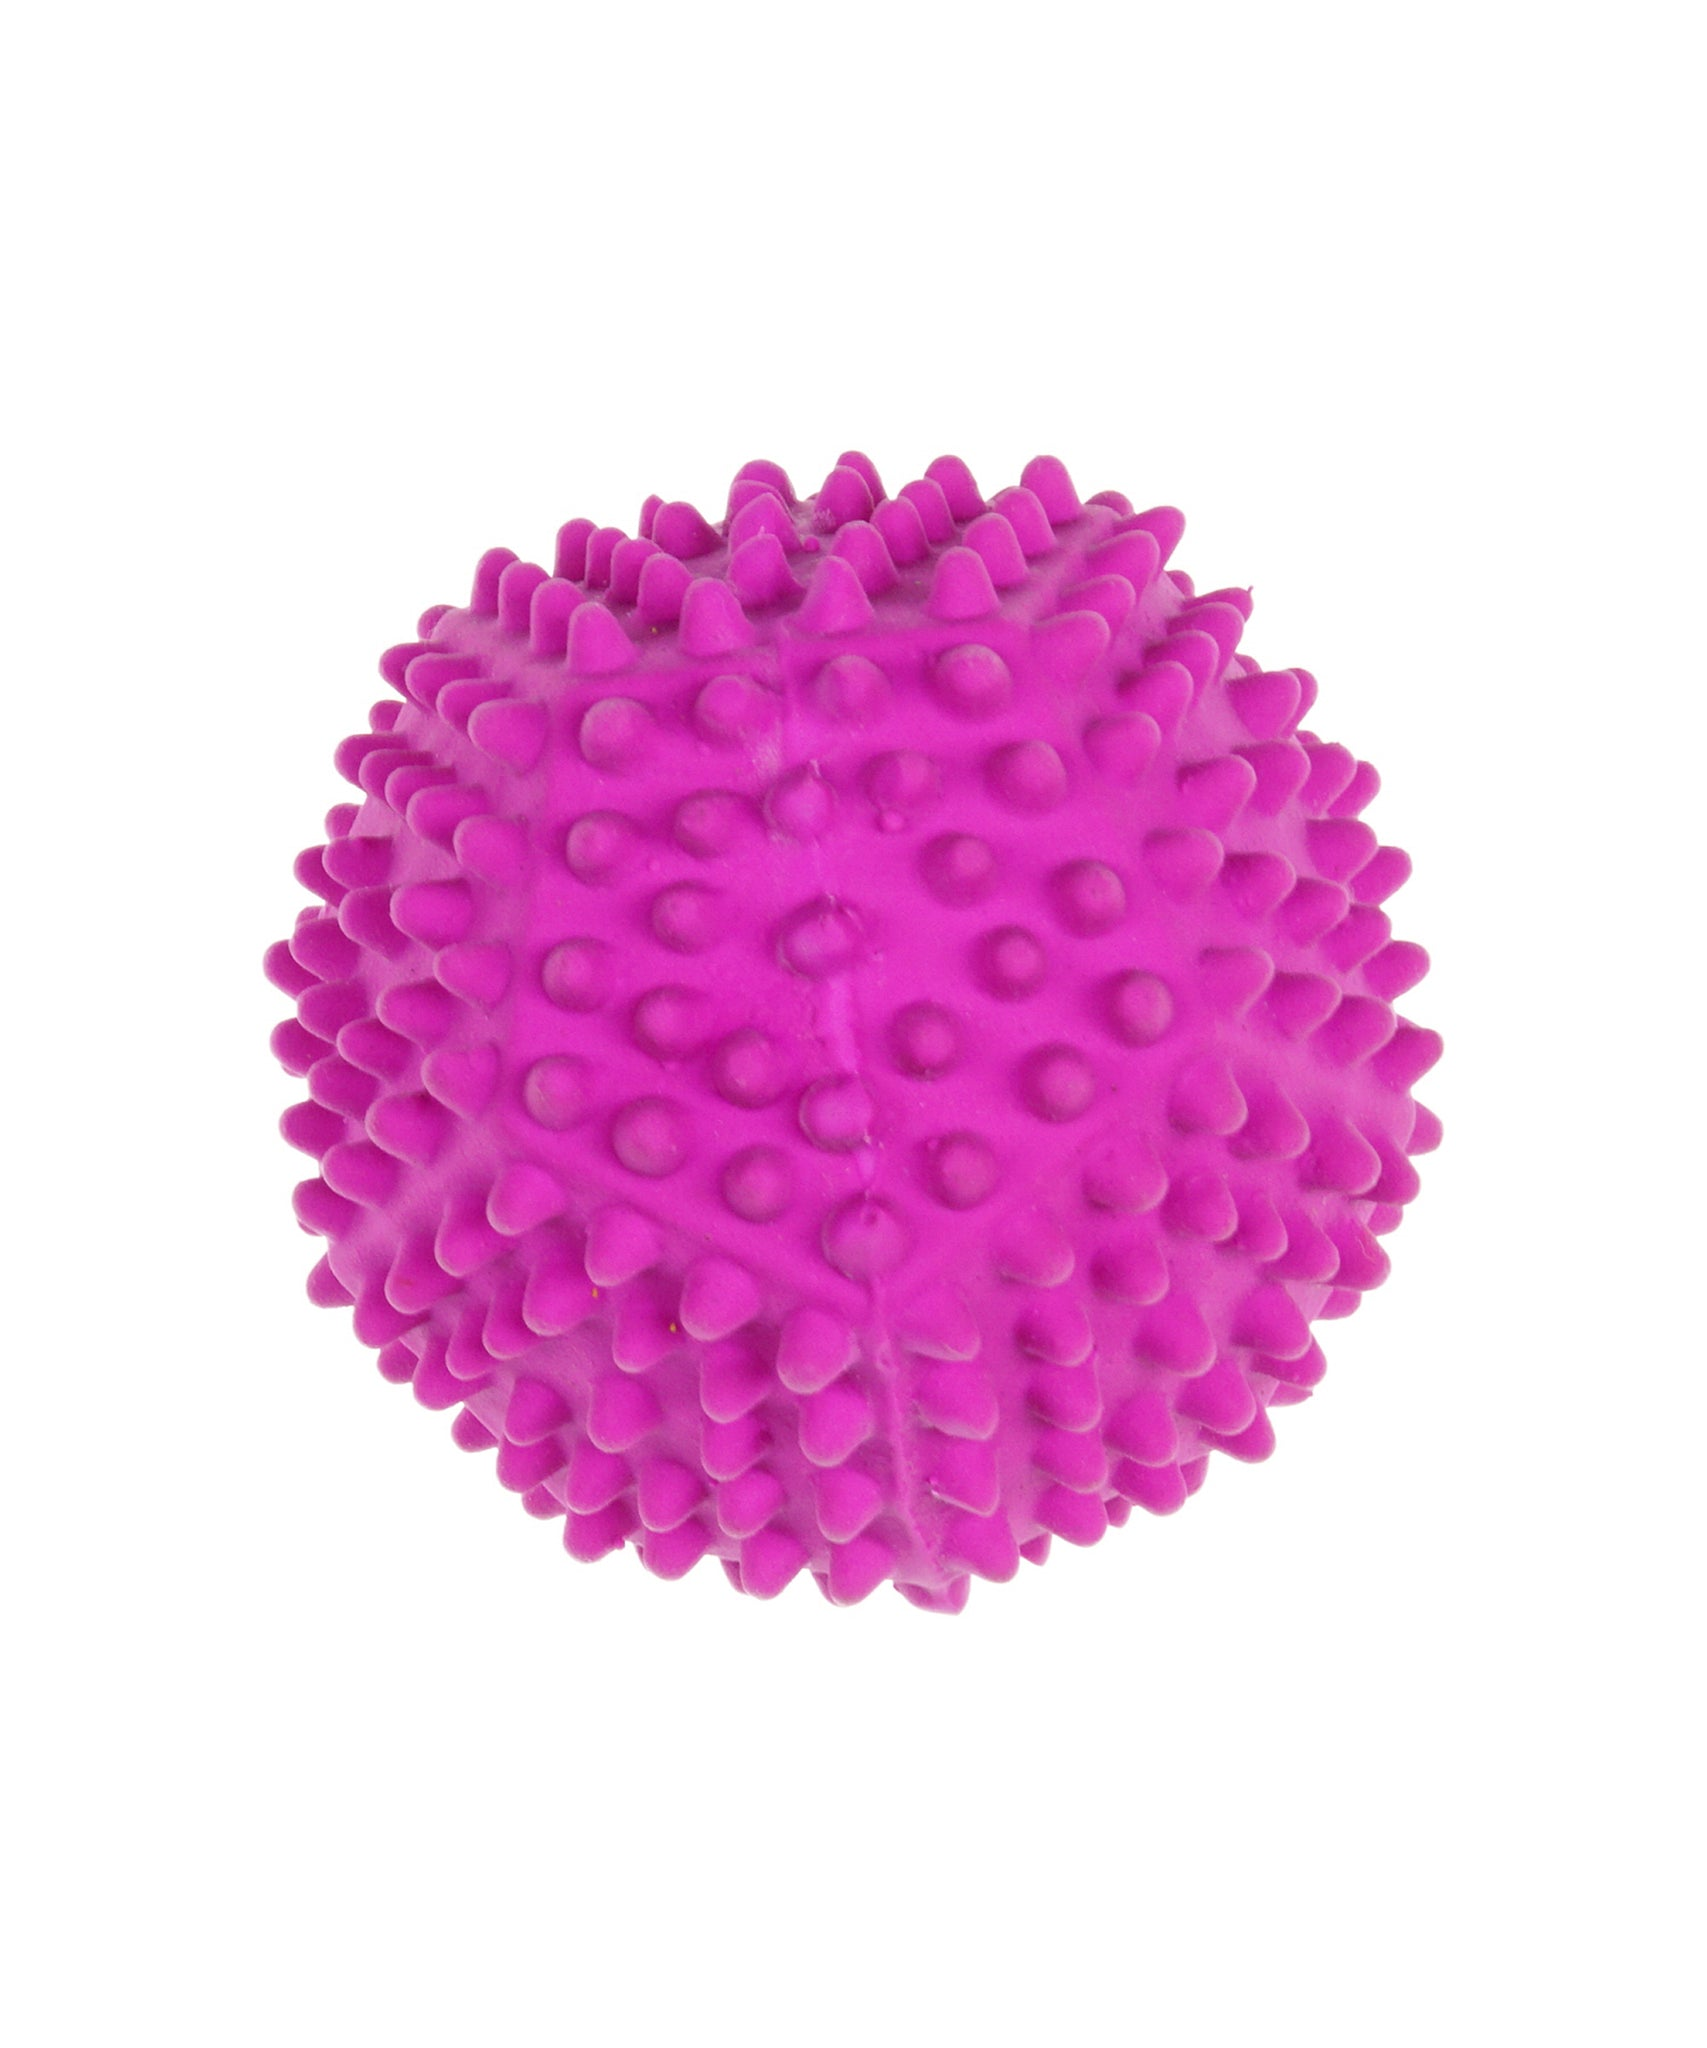 spiky purple pentagon ball toy for dogs 3.5